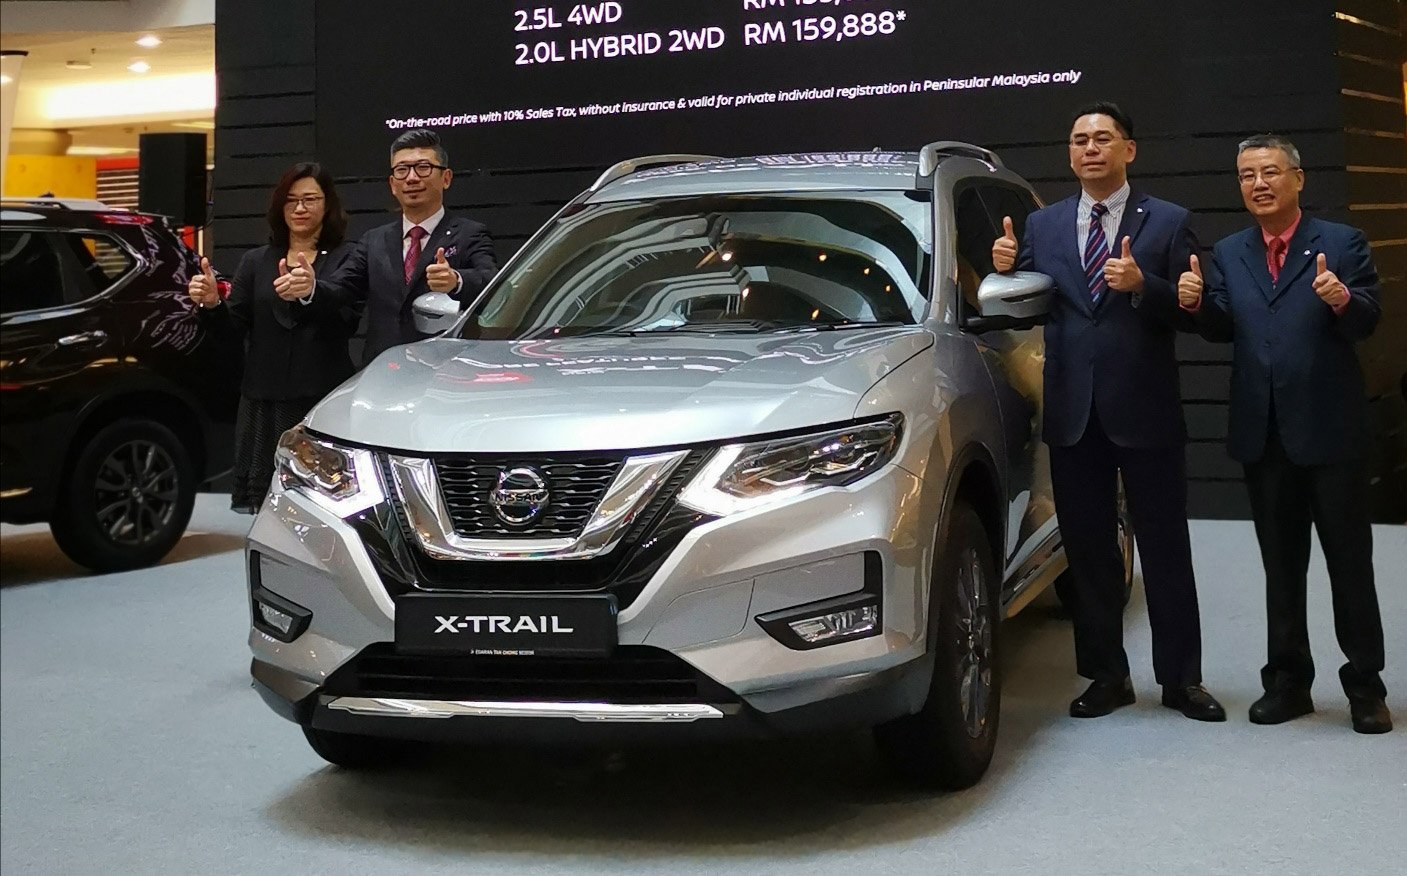 ETCM ANNOUNCED OFFICIAL PRICE FOR THE NEW X-TRAIL FACELIFT, MORE FEATURES AND NO PRICE INCREASE